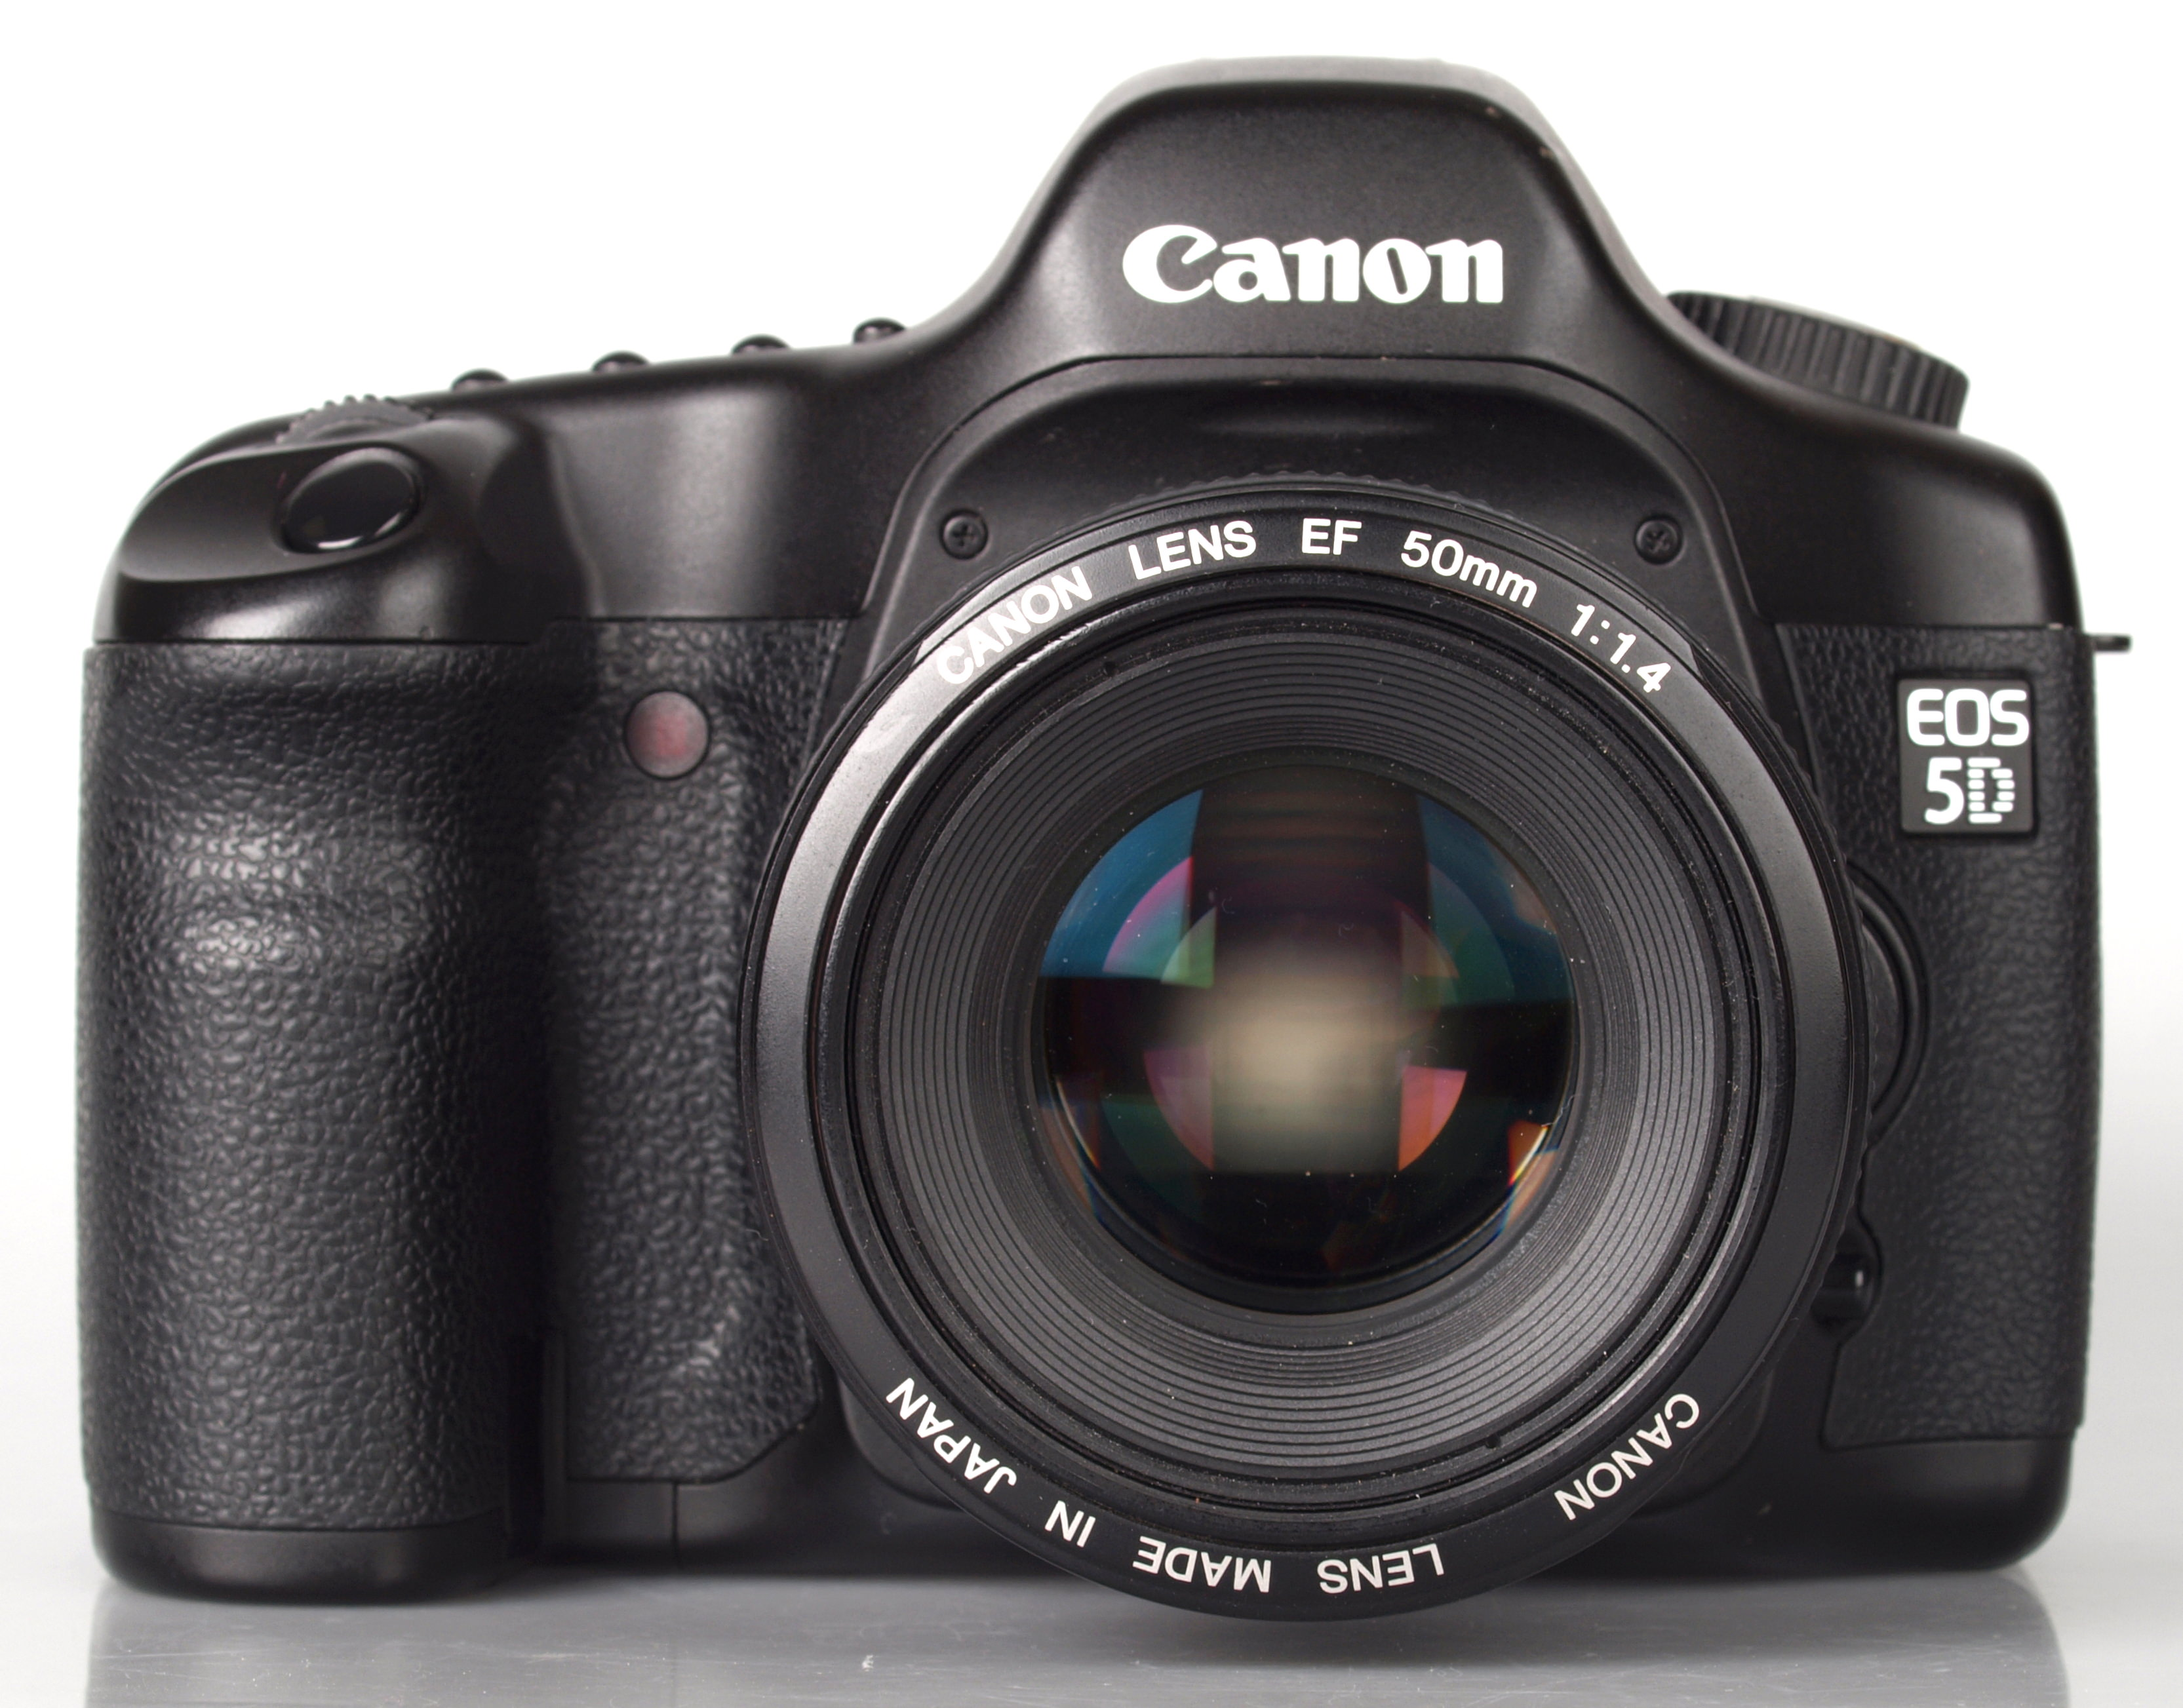 https://i1.wp.com/www.ephotozine.com/articles/canon-eos-5d-mark-i--ii-and-iii-review-comparison-19775/images/highres-canon-eos-5d-mark1-1_1343743934.jpg